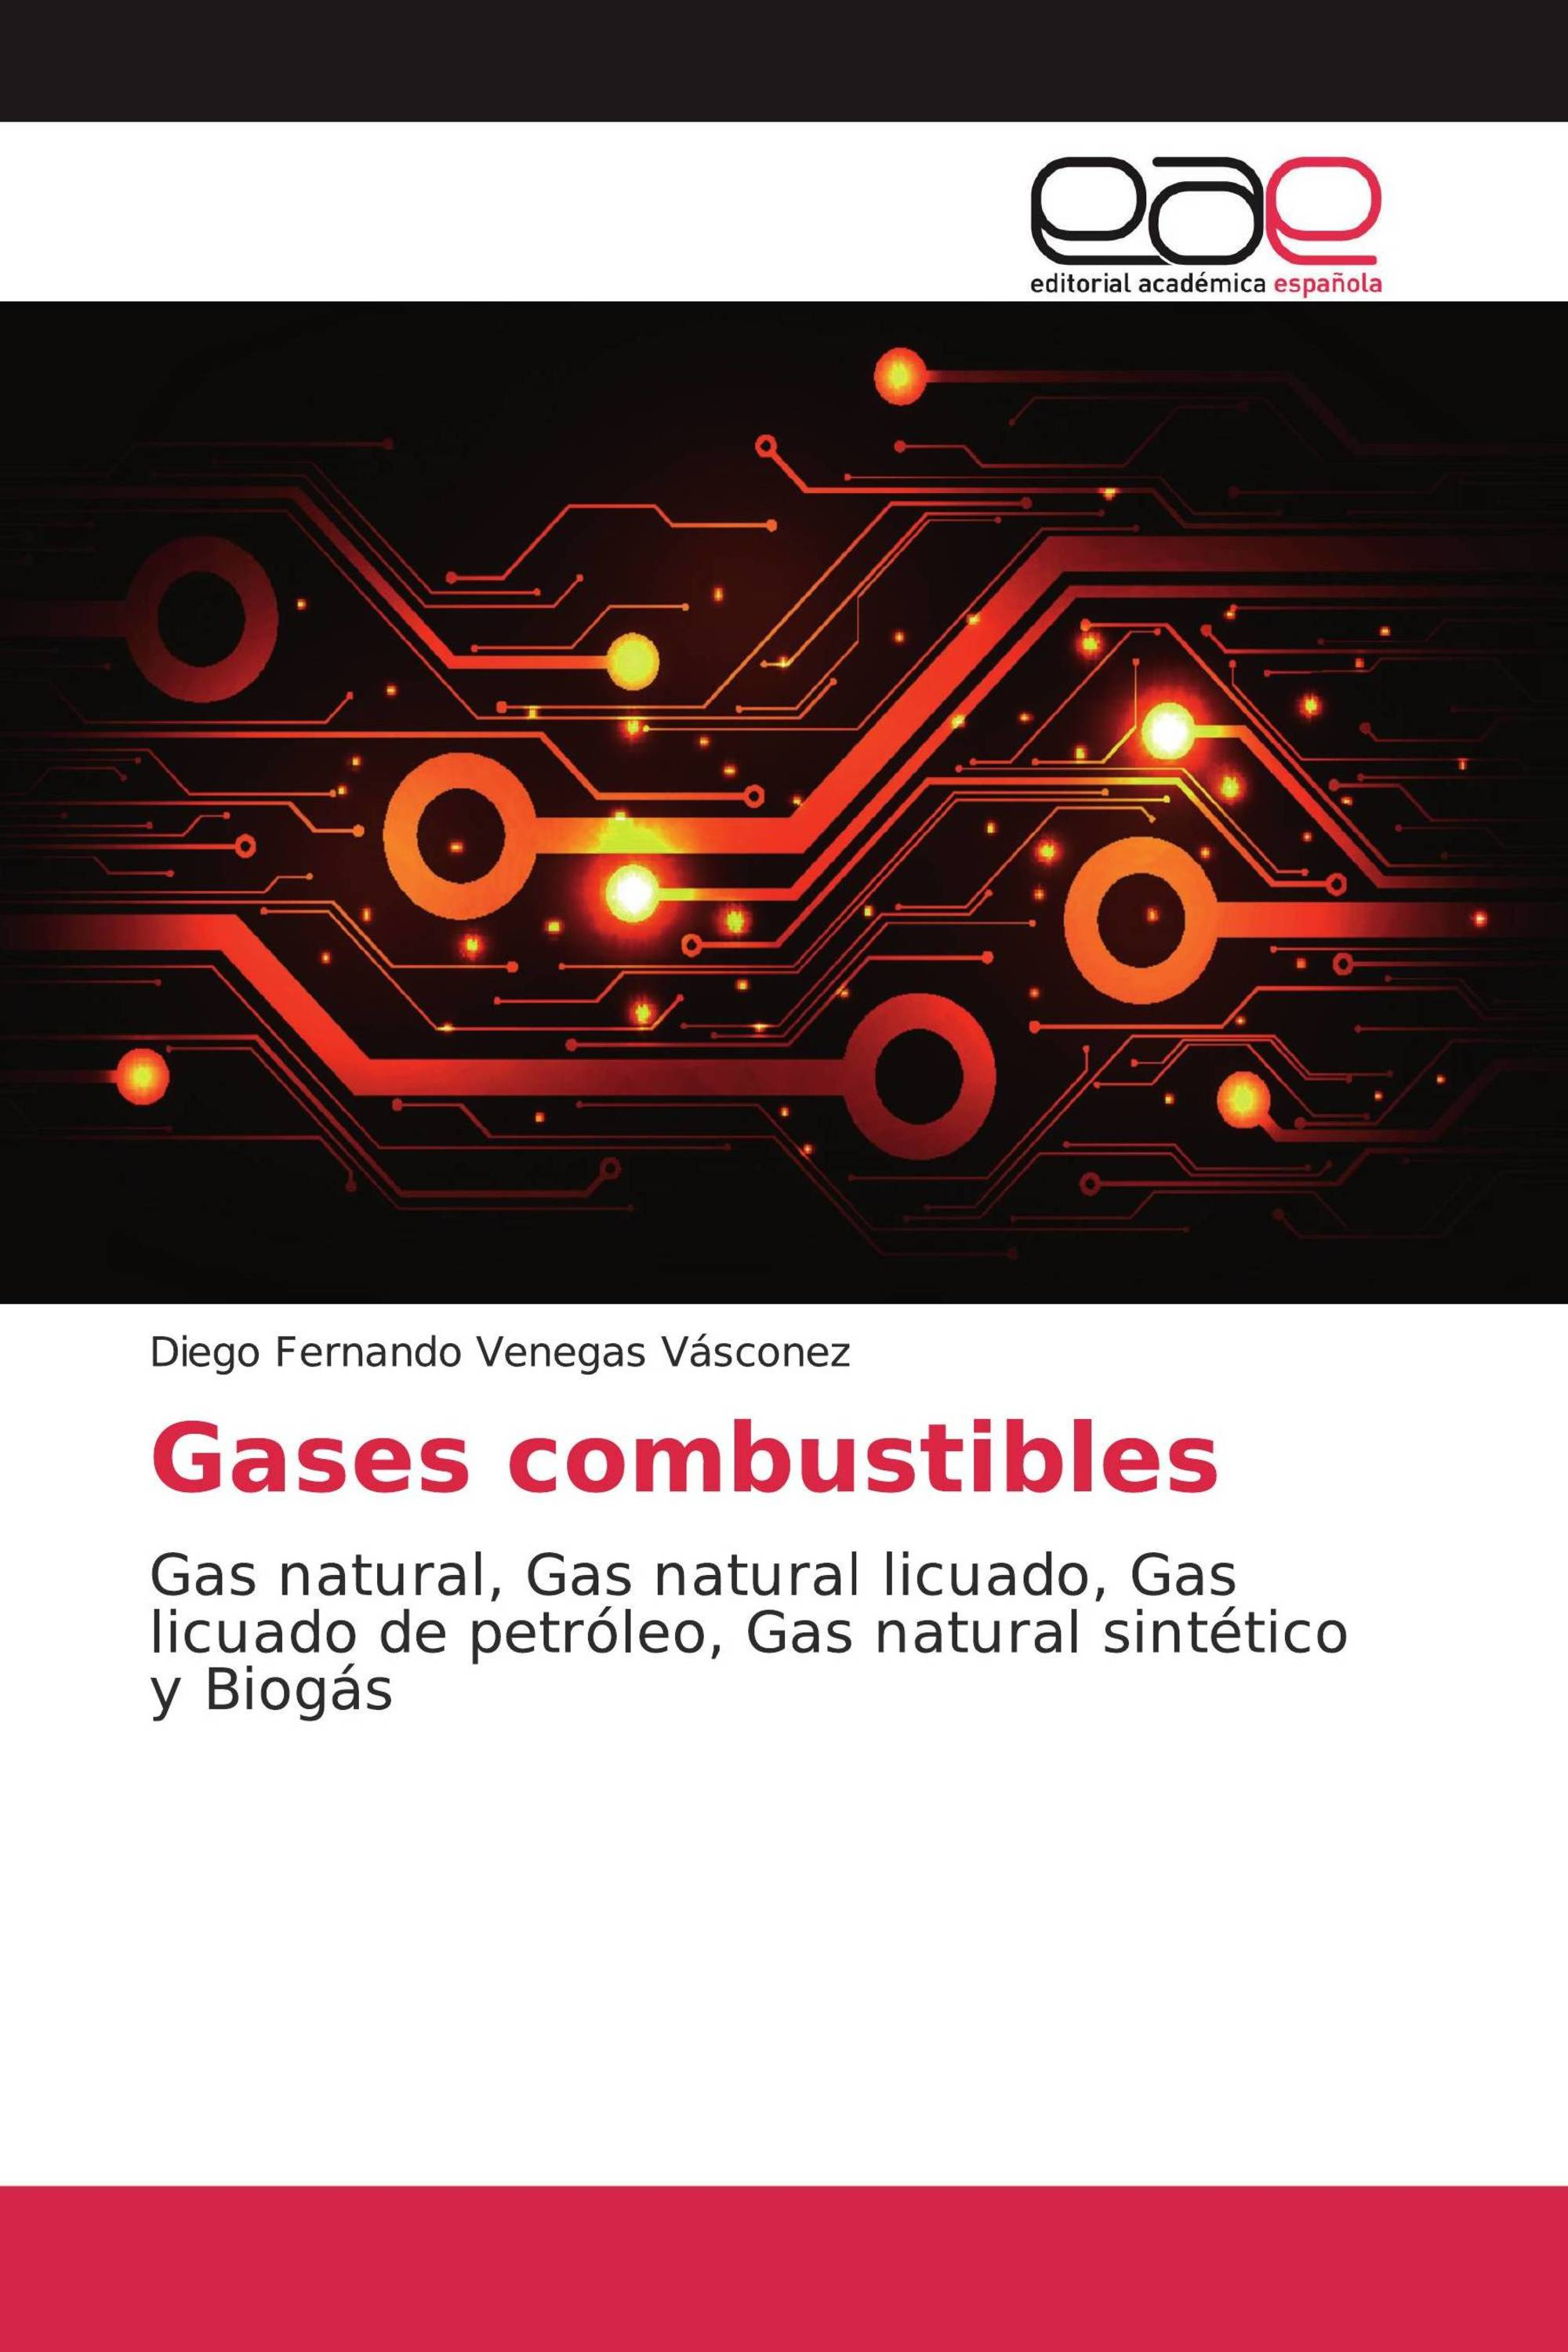 Gases combustibles